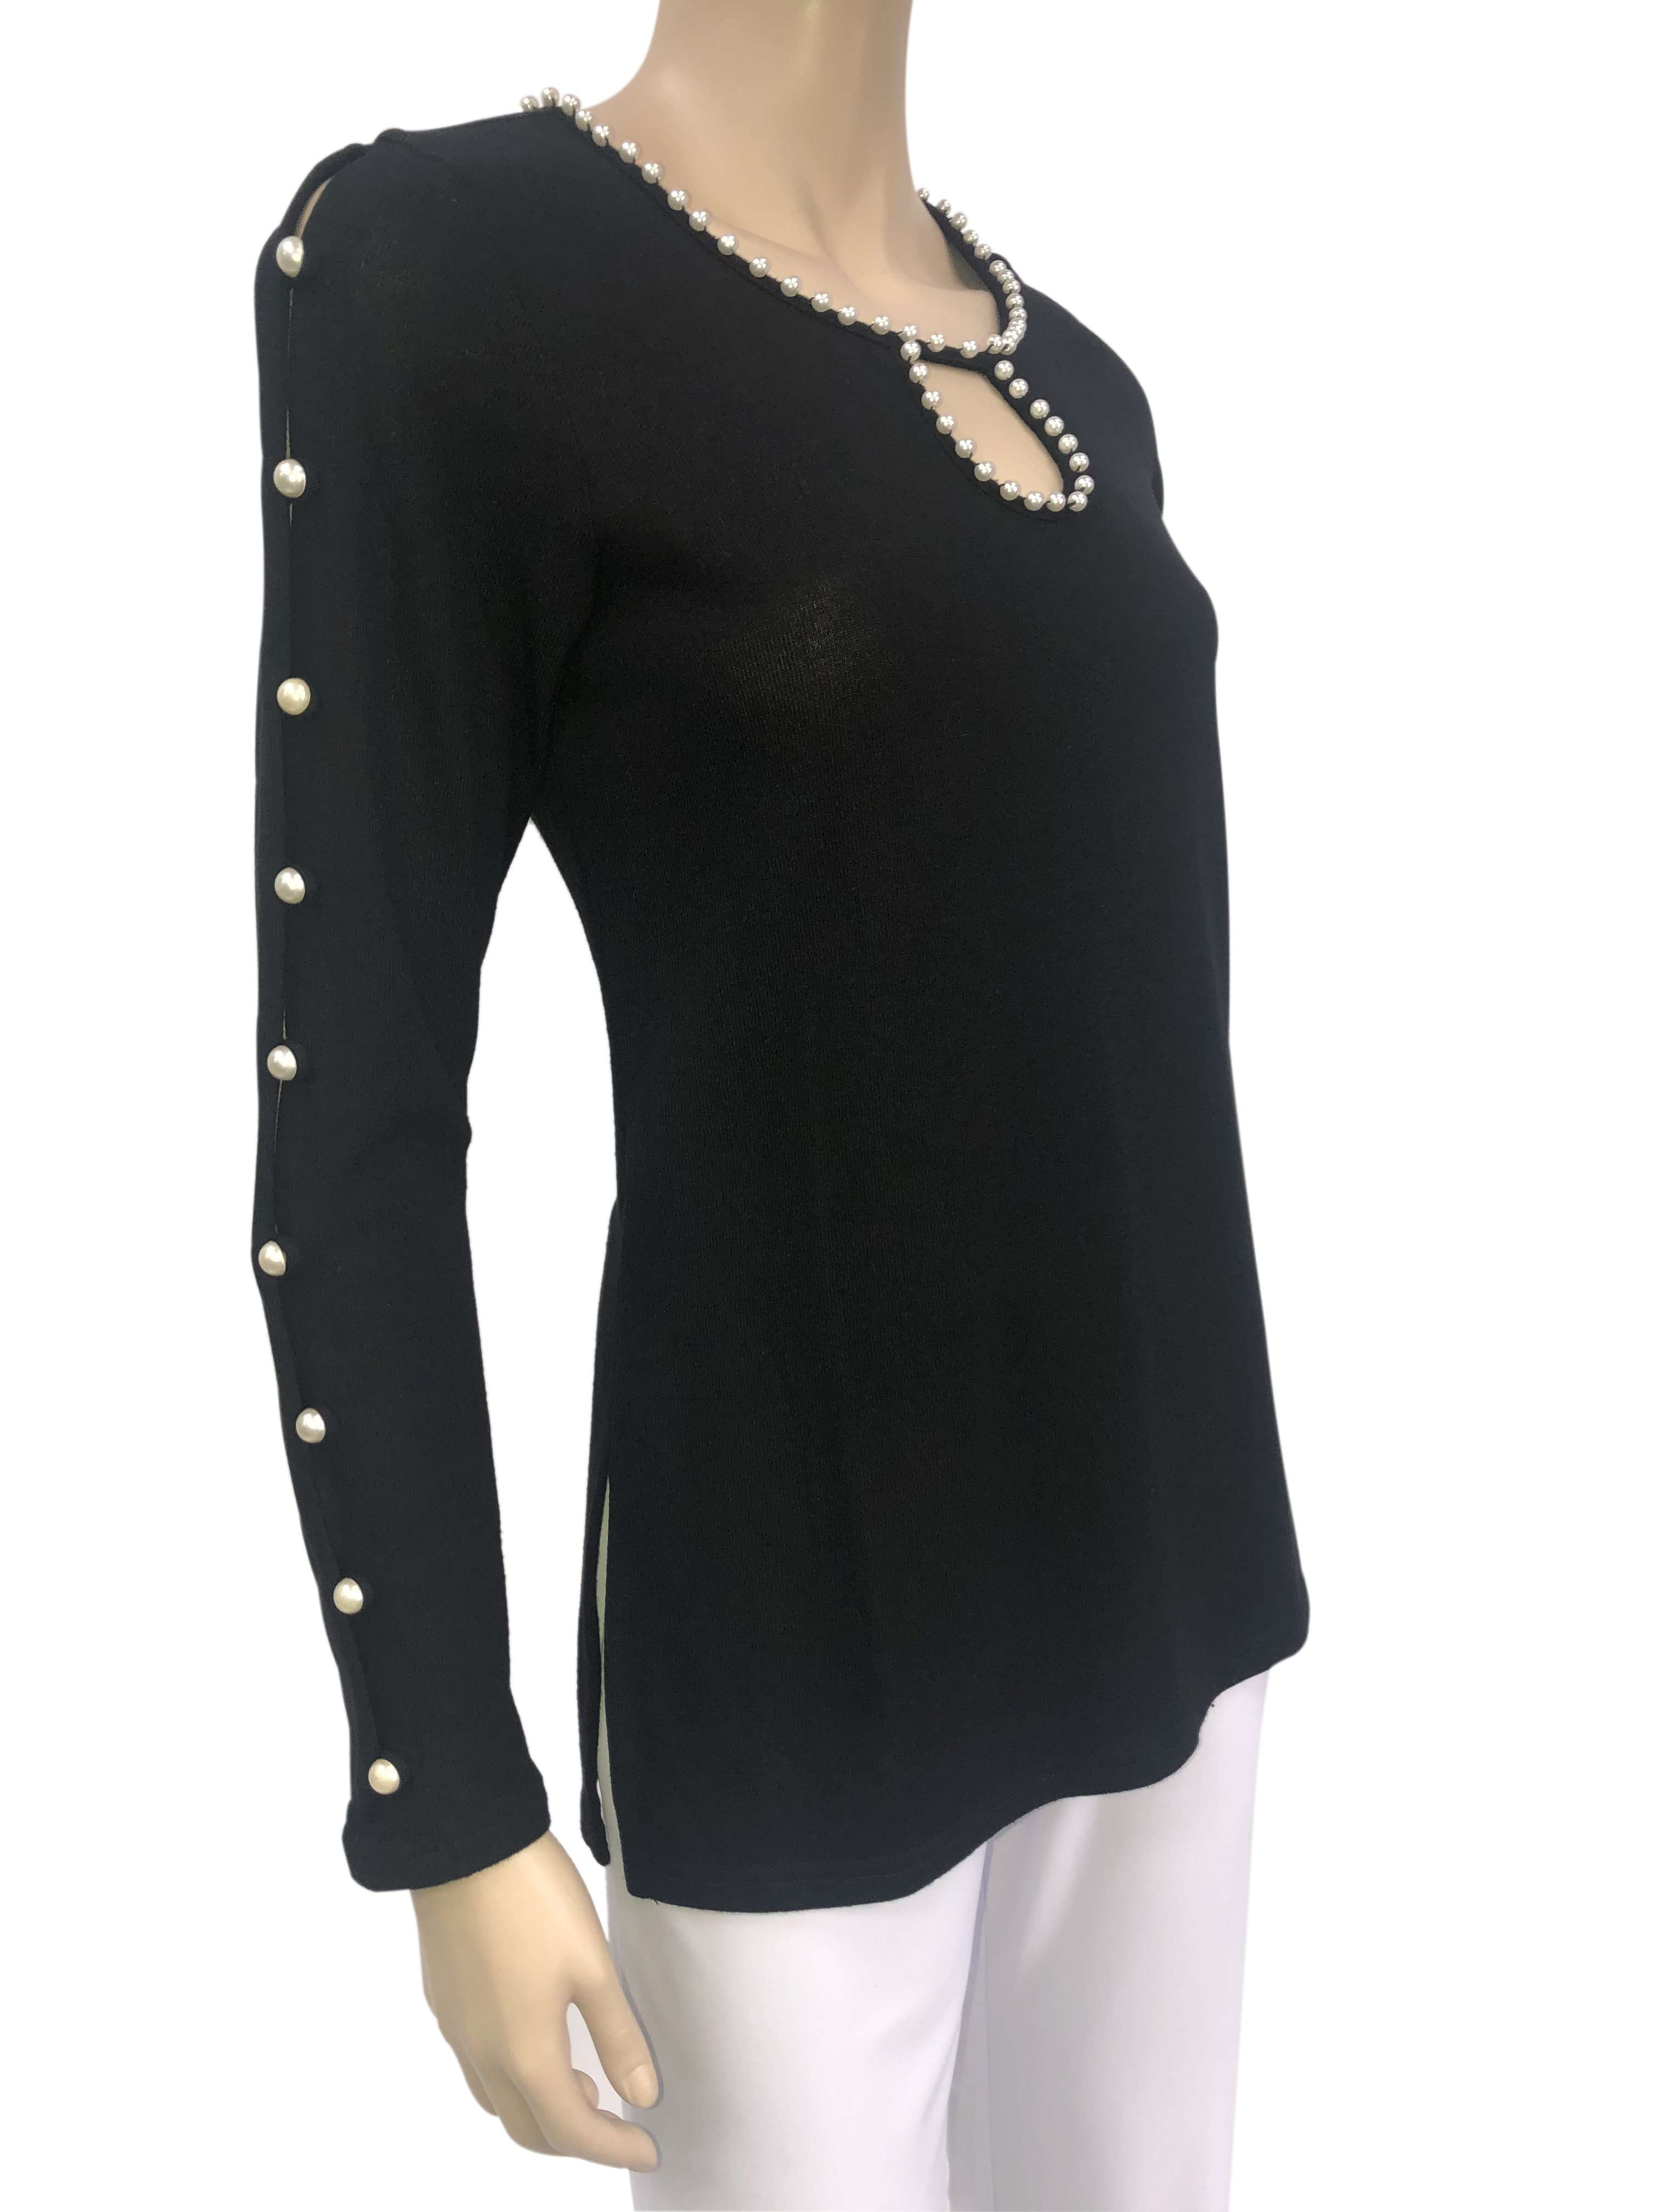 Women's Blouse Black with Pearl Details Beautiful Quality and Fit - Yvonne Marie - Yvonne Marie